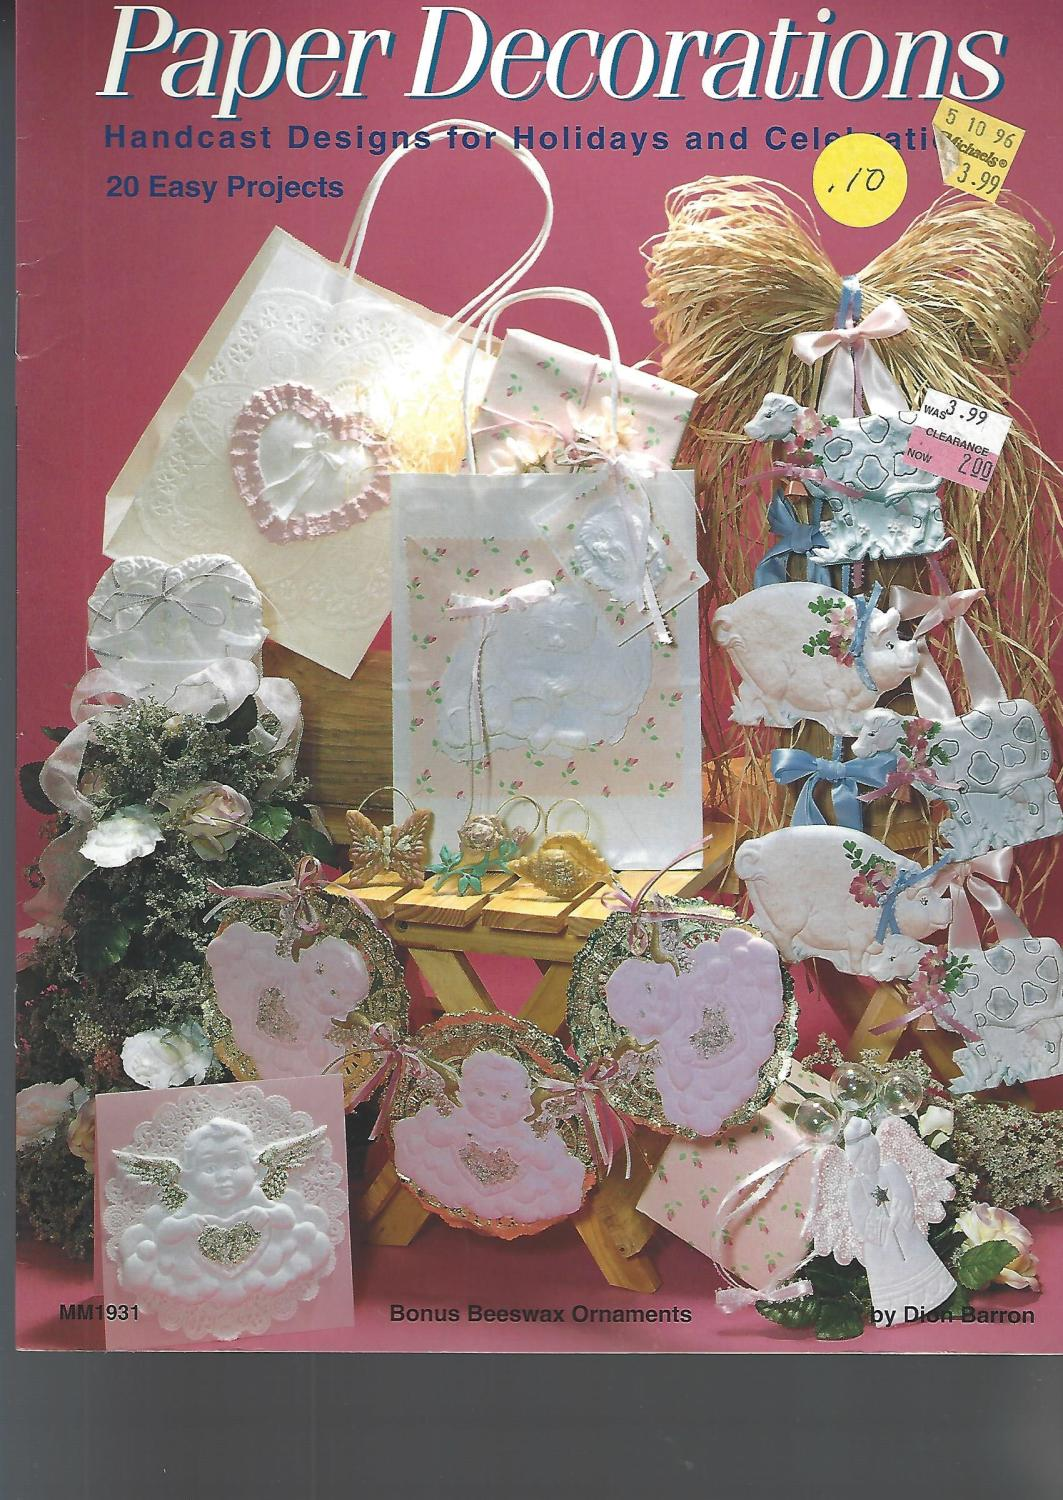 Paper Decorations -- handcast designs for